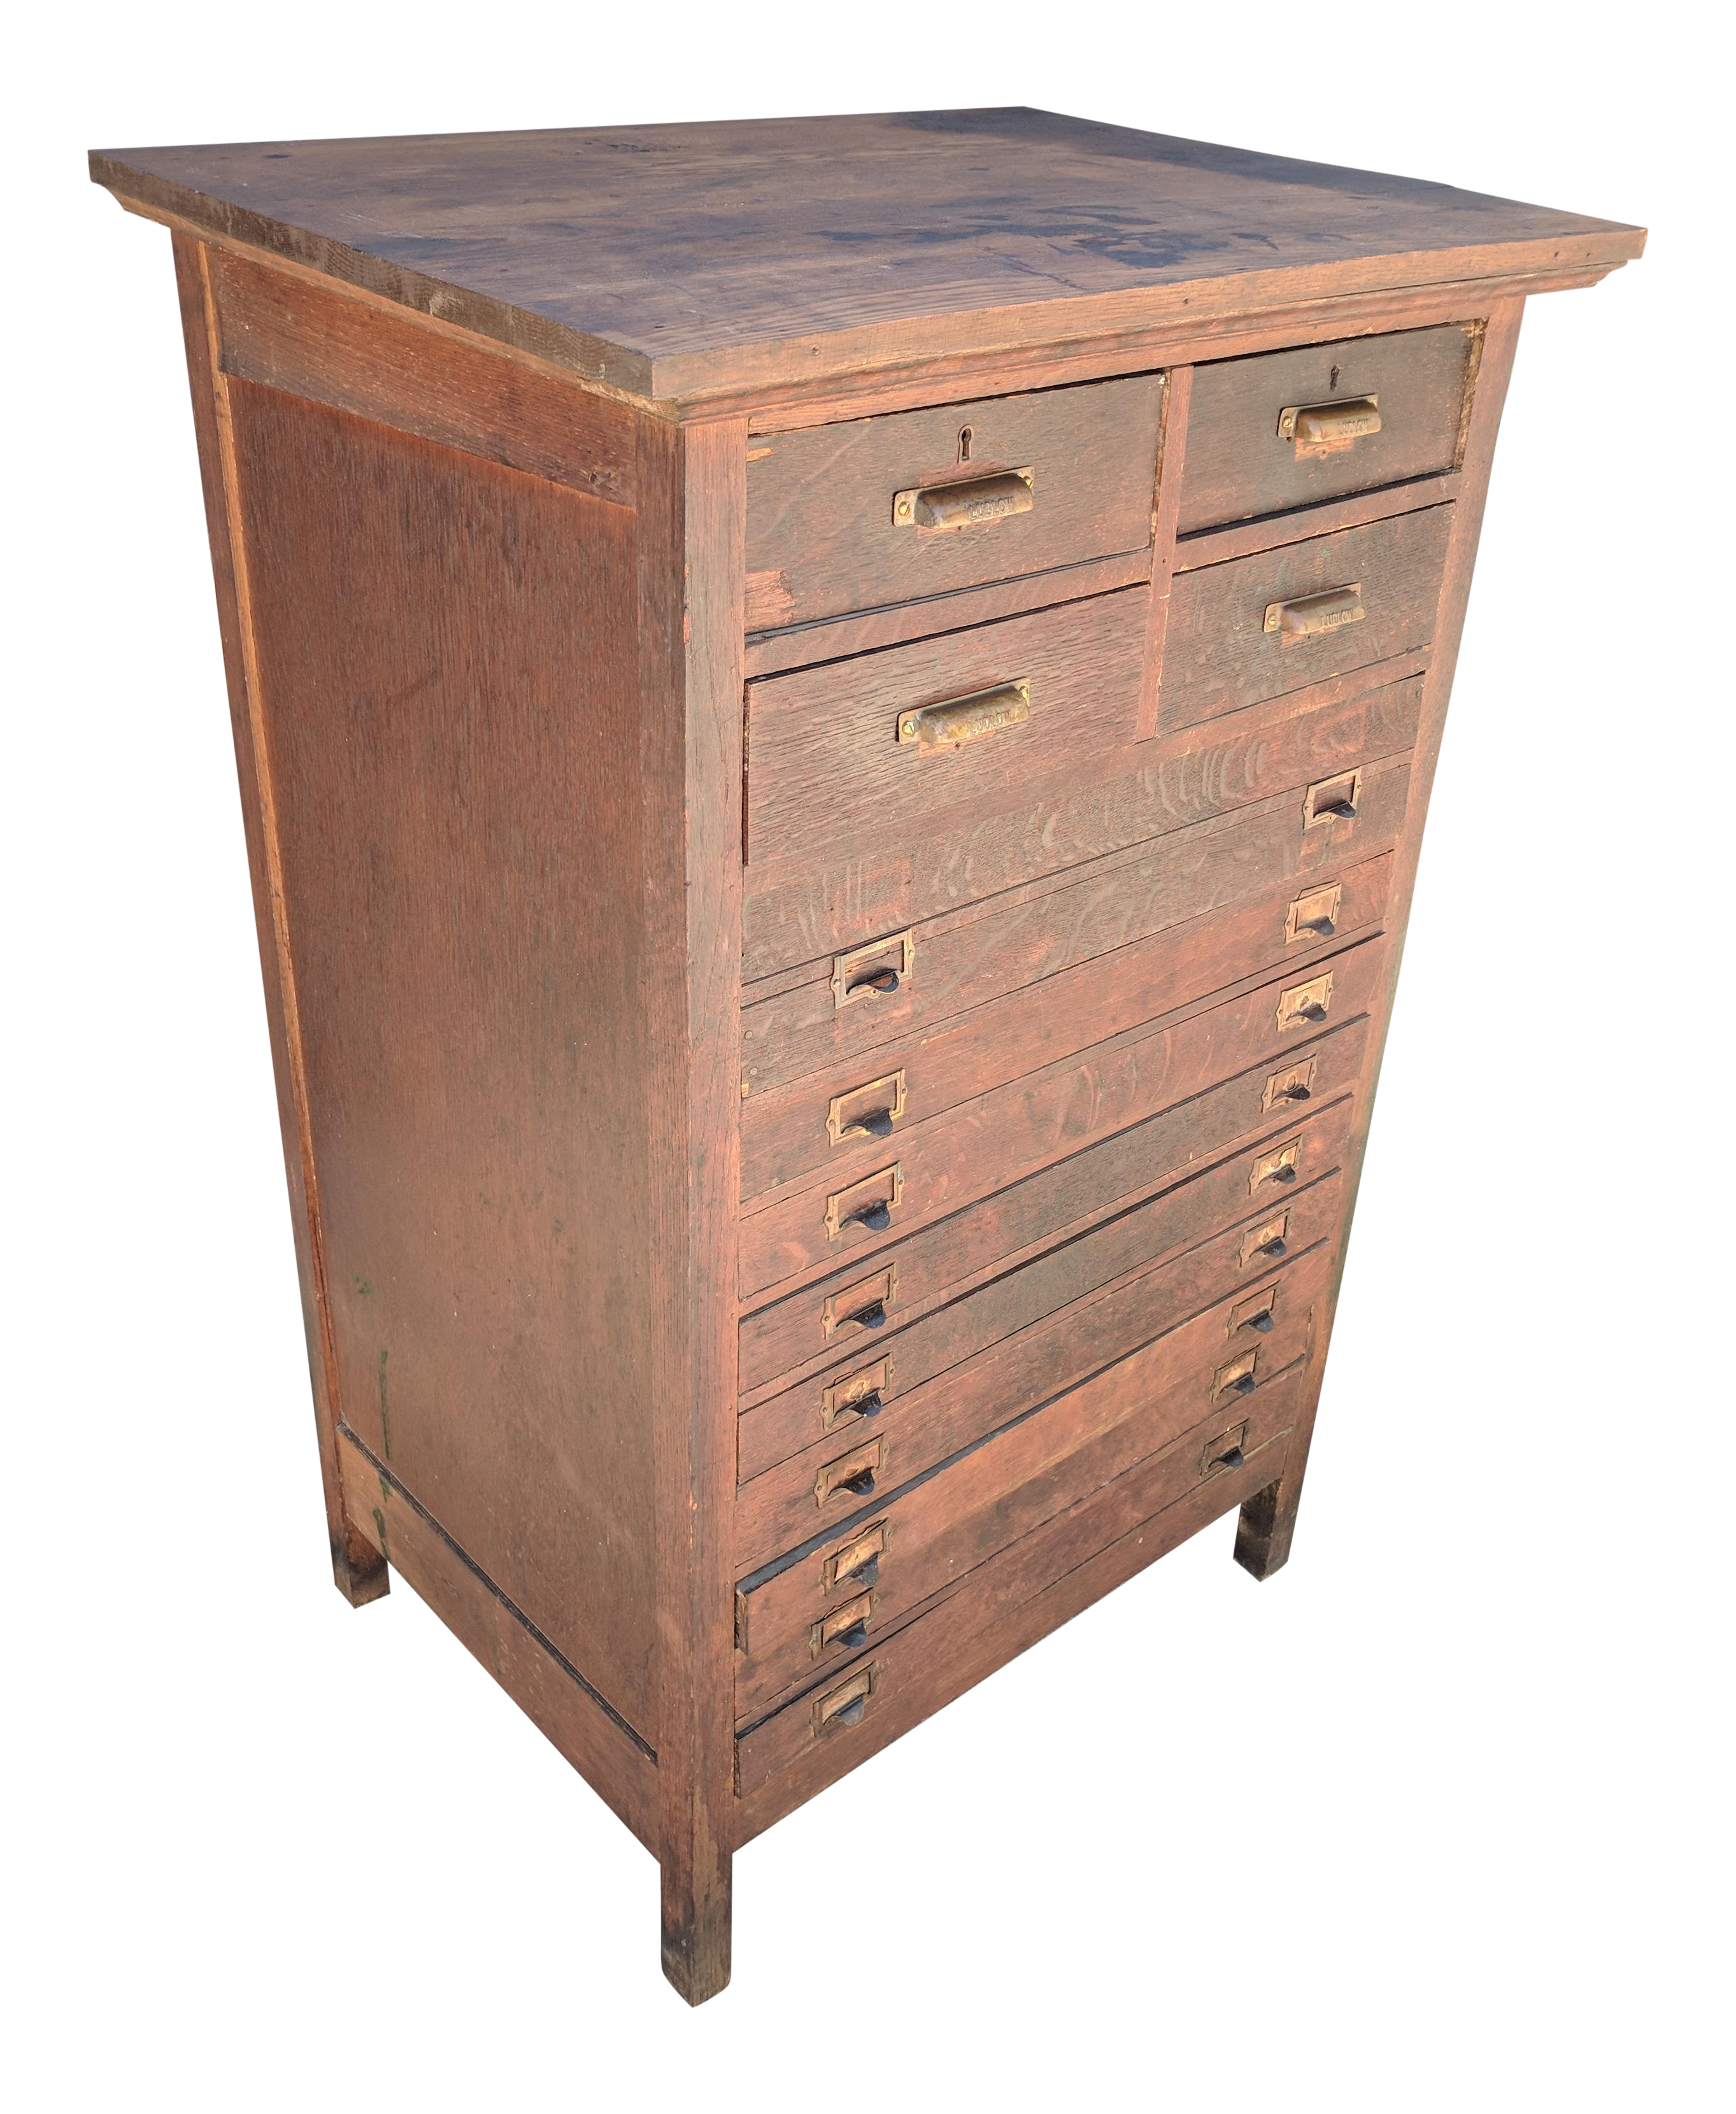 Vintage & Used Industrial Filing Cabinets